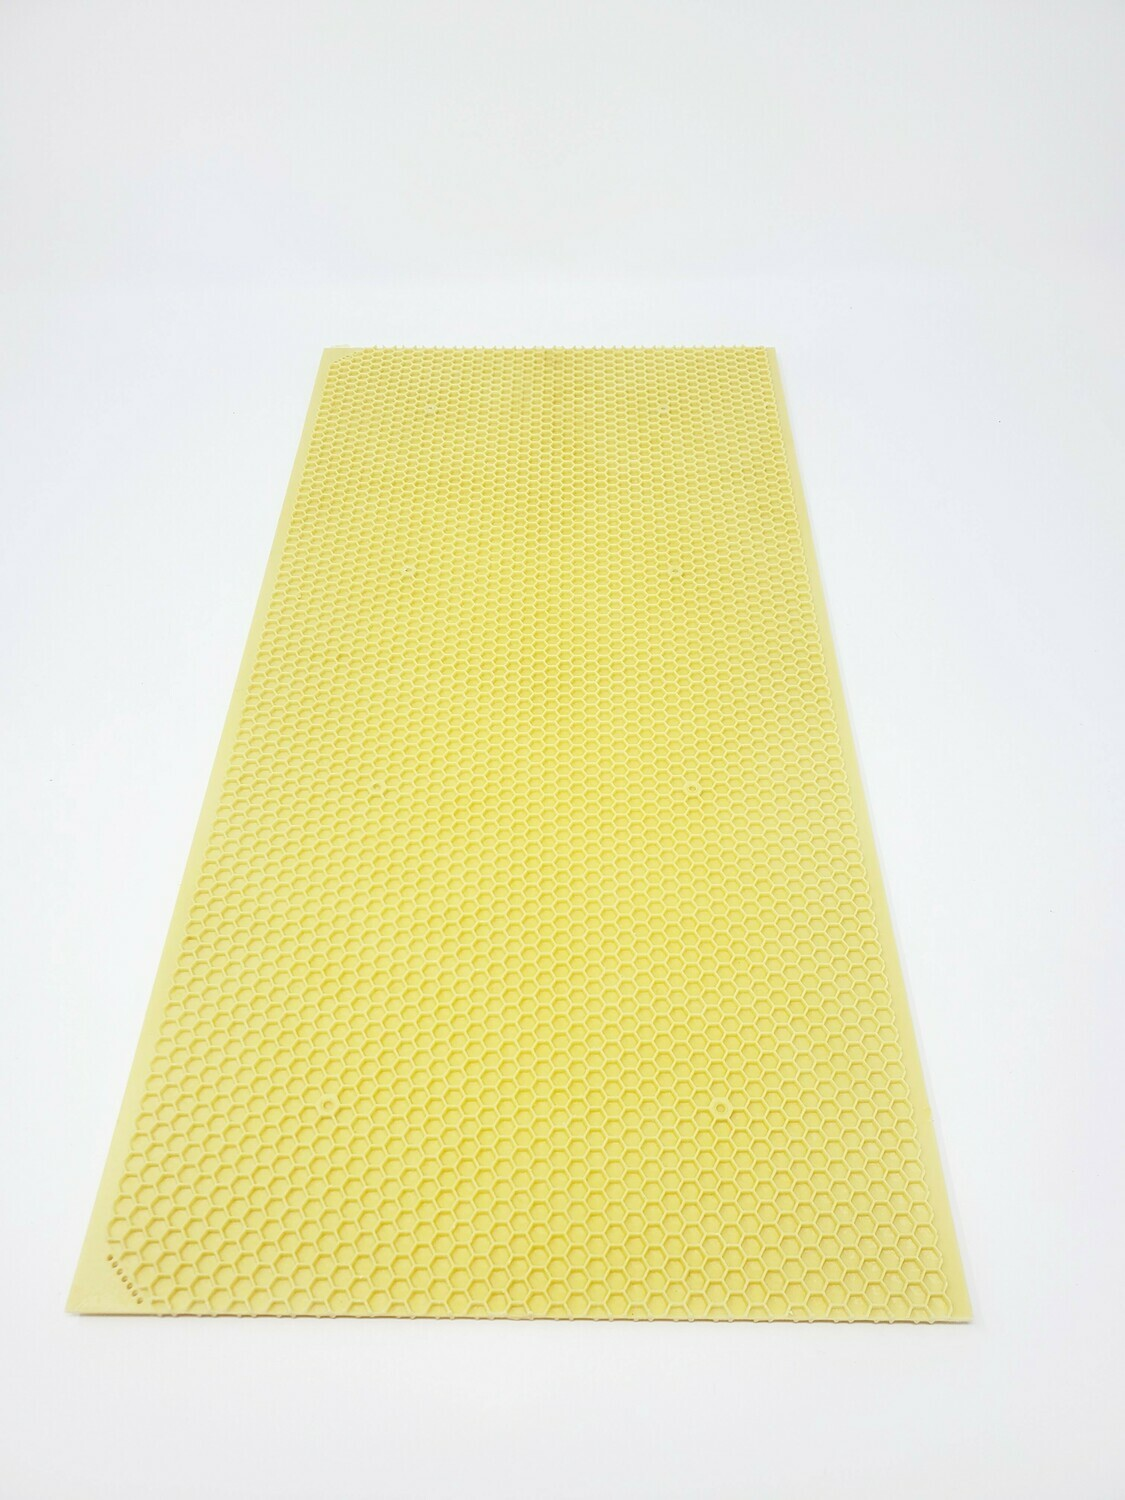 Standard waxed plastic sheets RiteCell